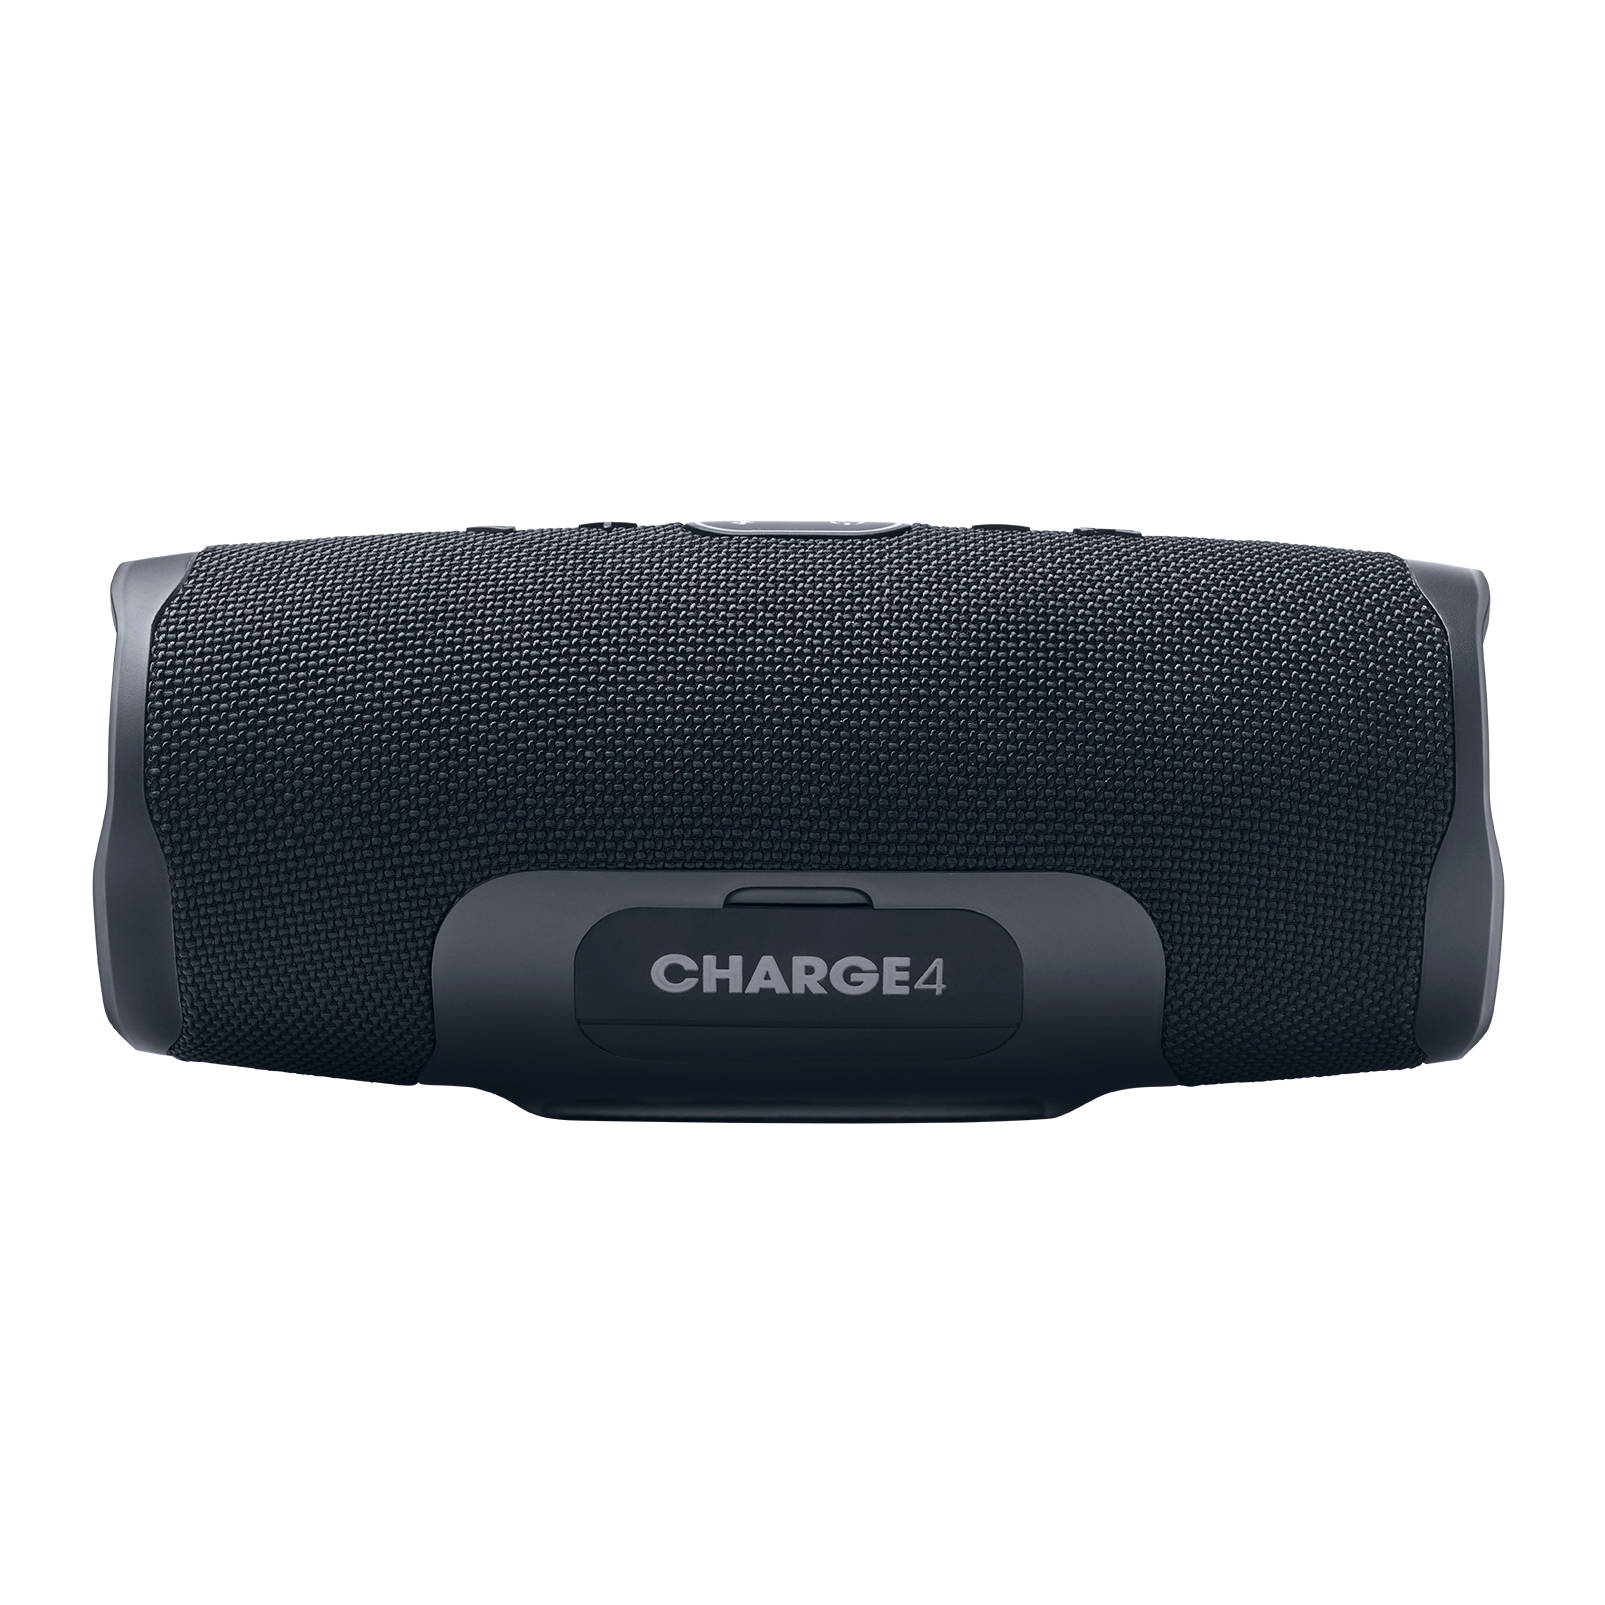 Image of JBL Charge 4 Black Bluetooth Högtalare JBL Bluetooth Högtalare 6925281939990 JBLCHARGE4BLK_A